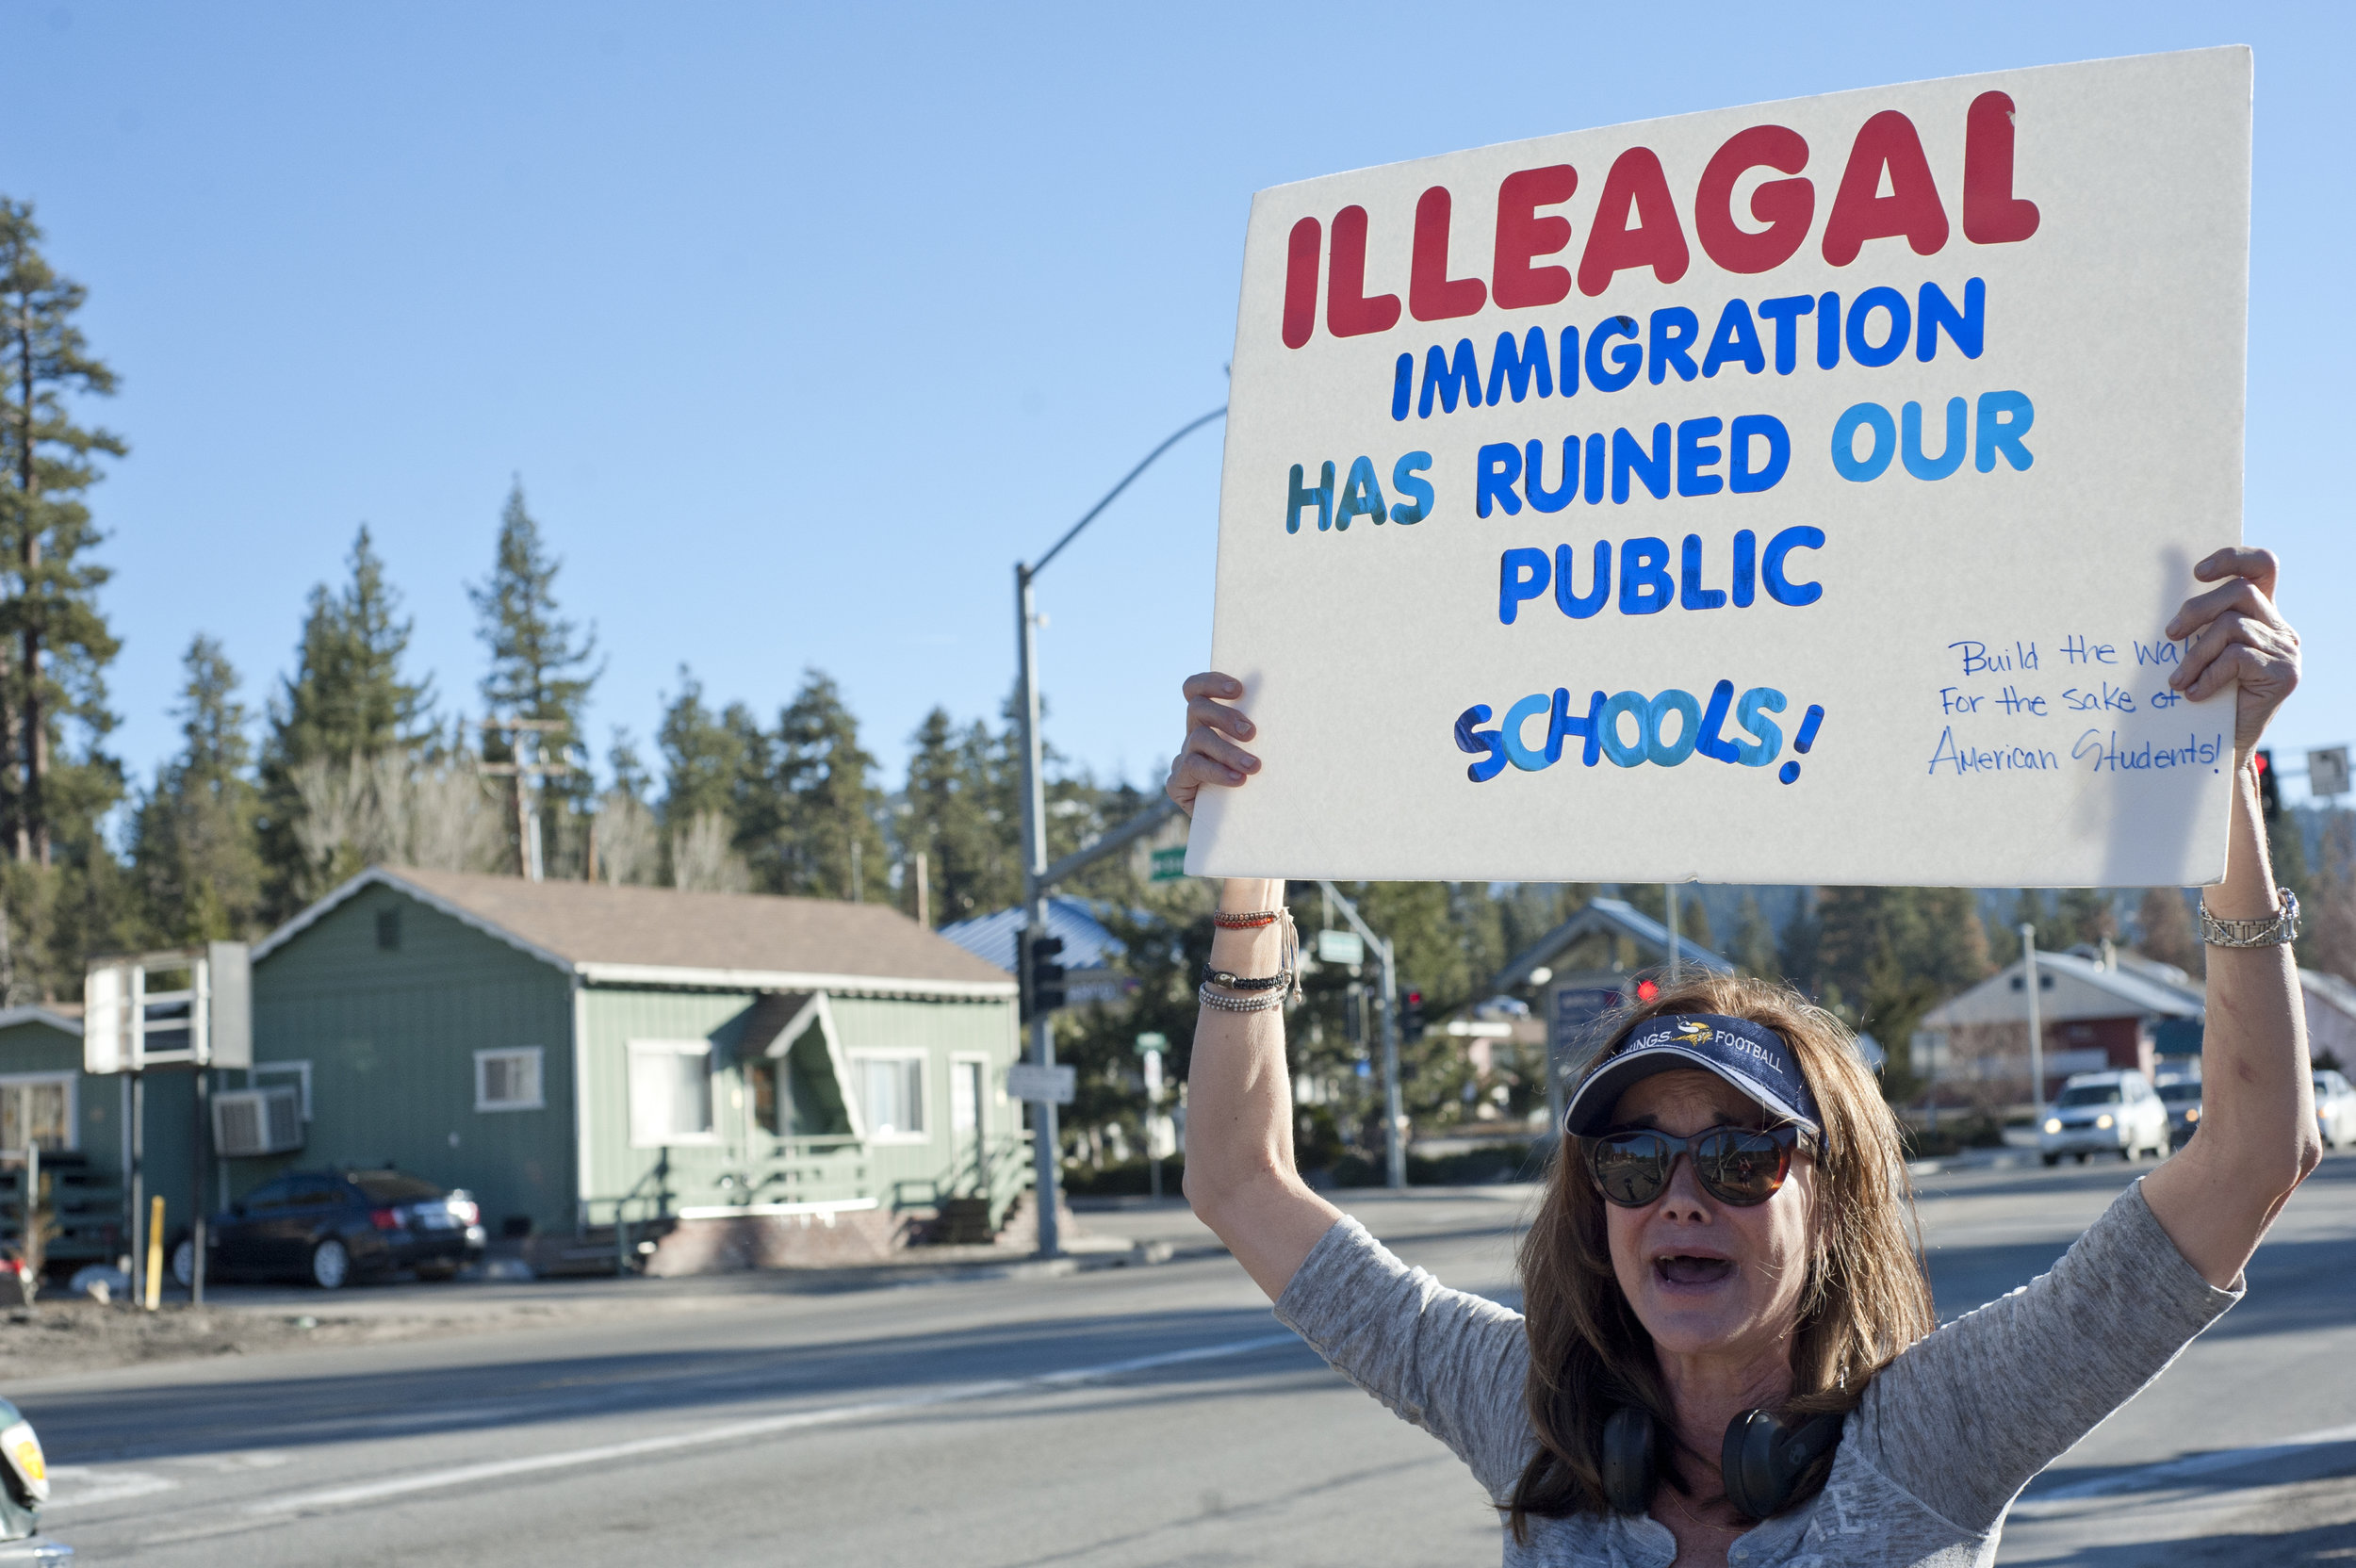 Retired teacher Adelle Manos expresses her concerns about illegal immigration as the only conservative protester the afternoon of March 8, 2017, in Big Bear Lake.